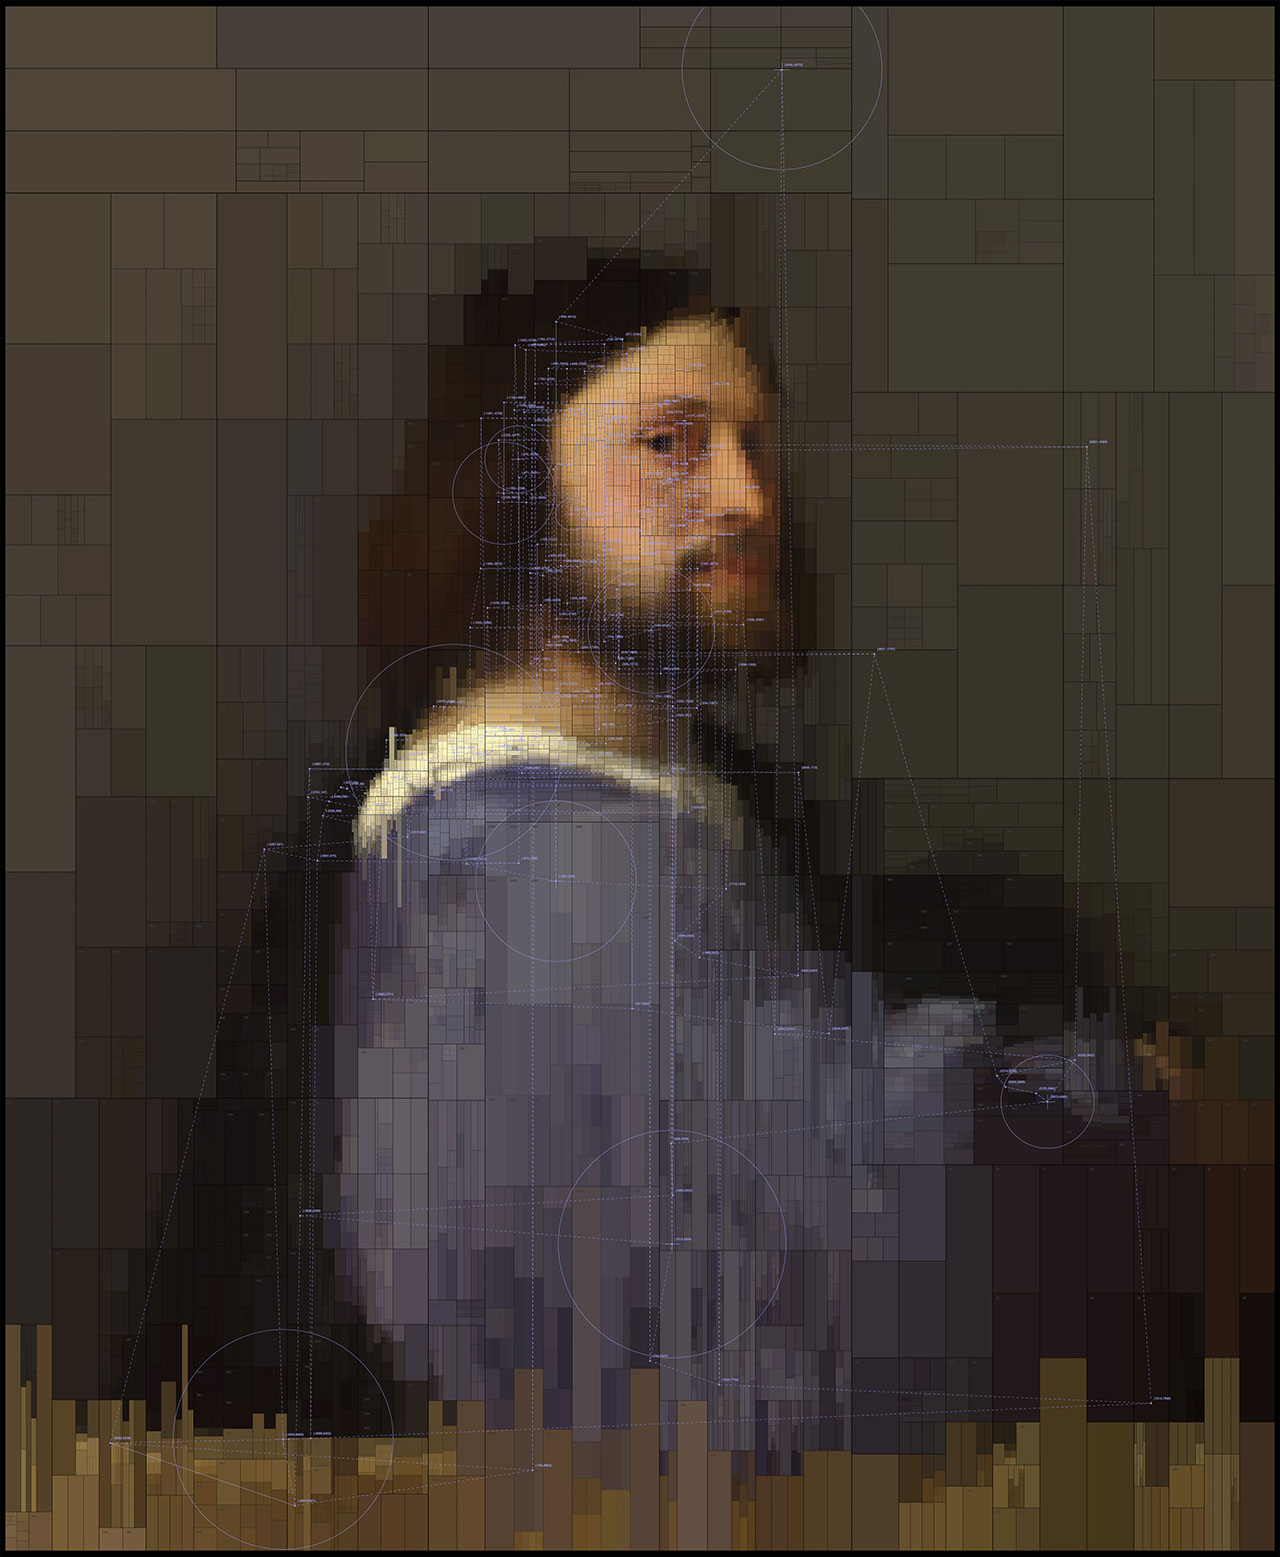 A Man with a Quilted Sleeve,from Portraits series by Dimitris Ladopoulos (Original painting by Titian, 1510).